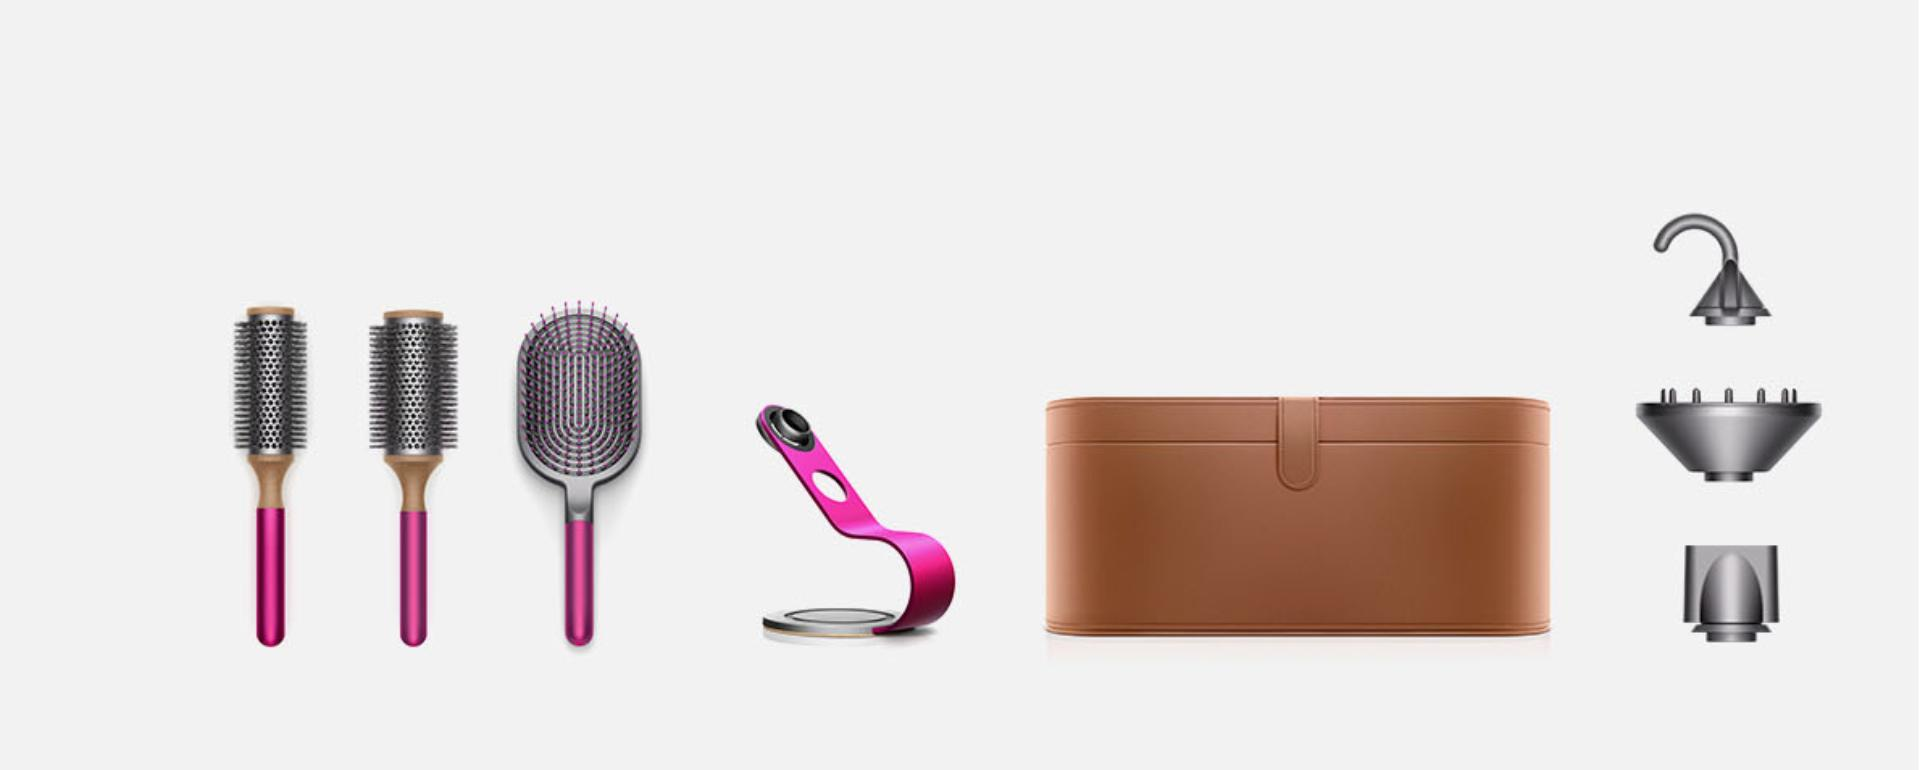 Images of all the Dyson Supersonic styling attachments